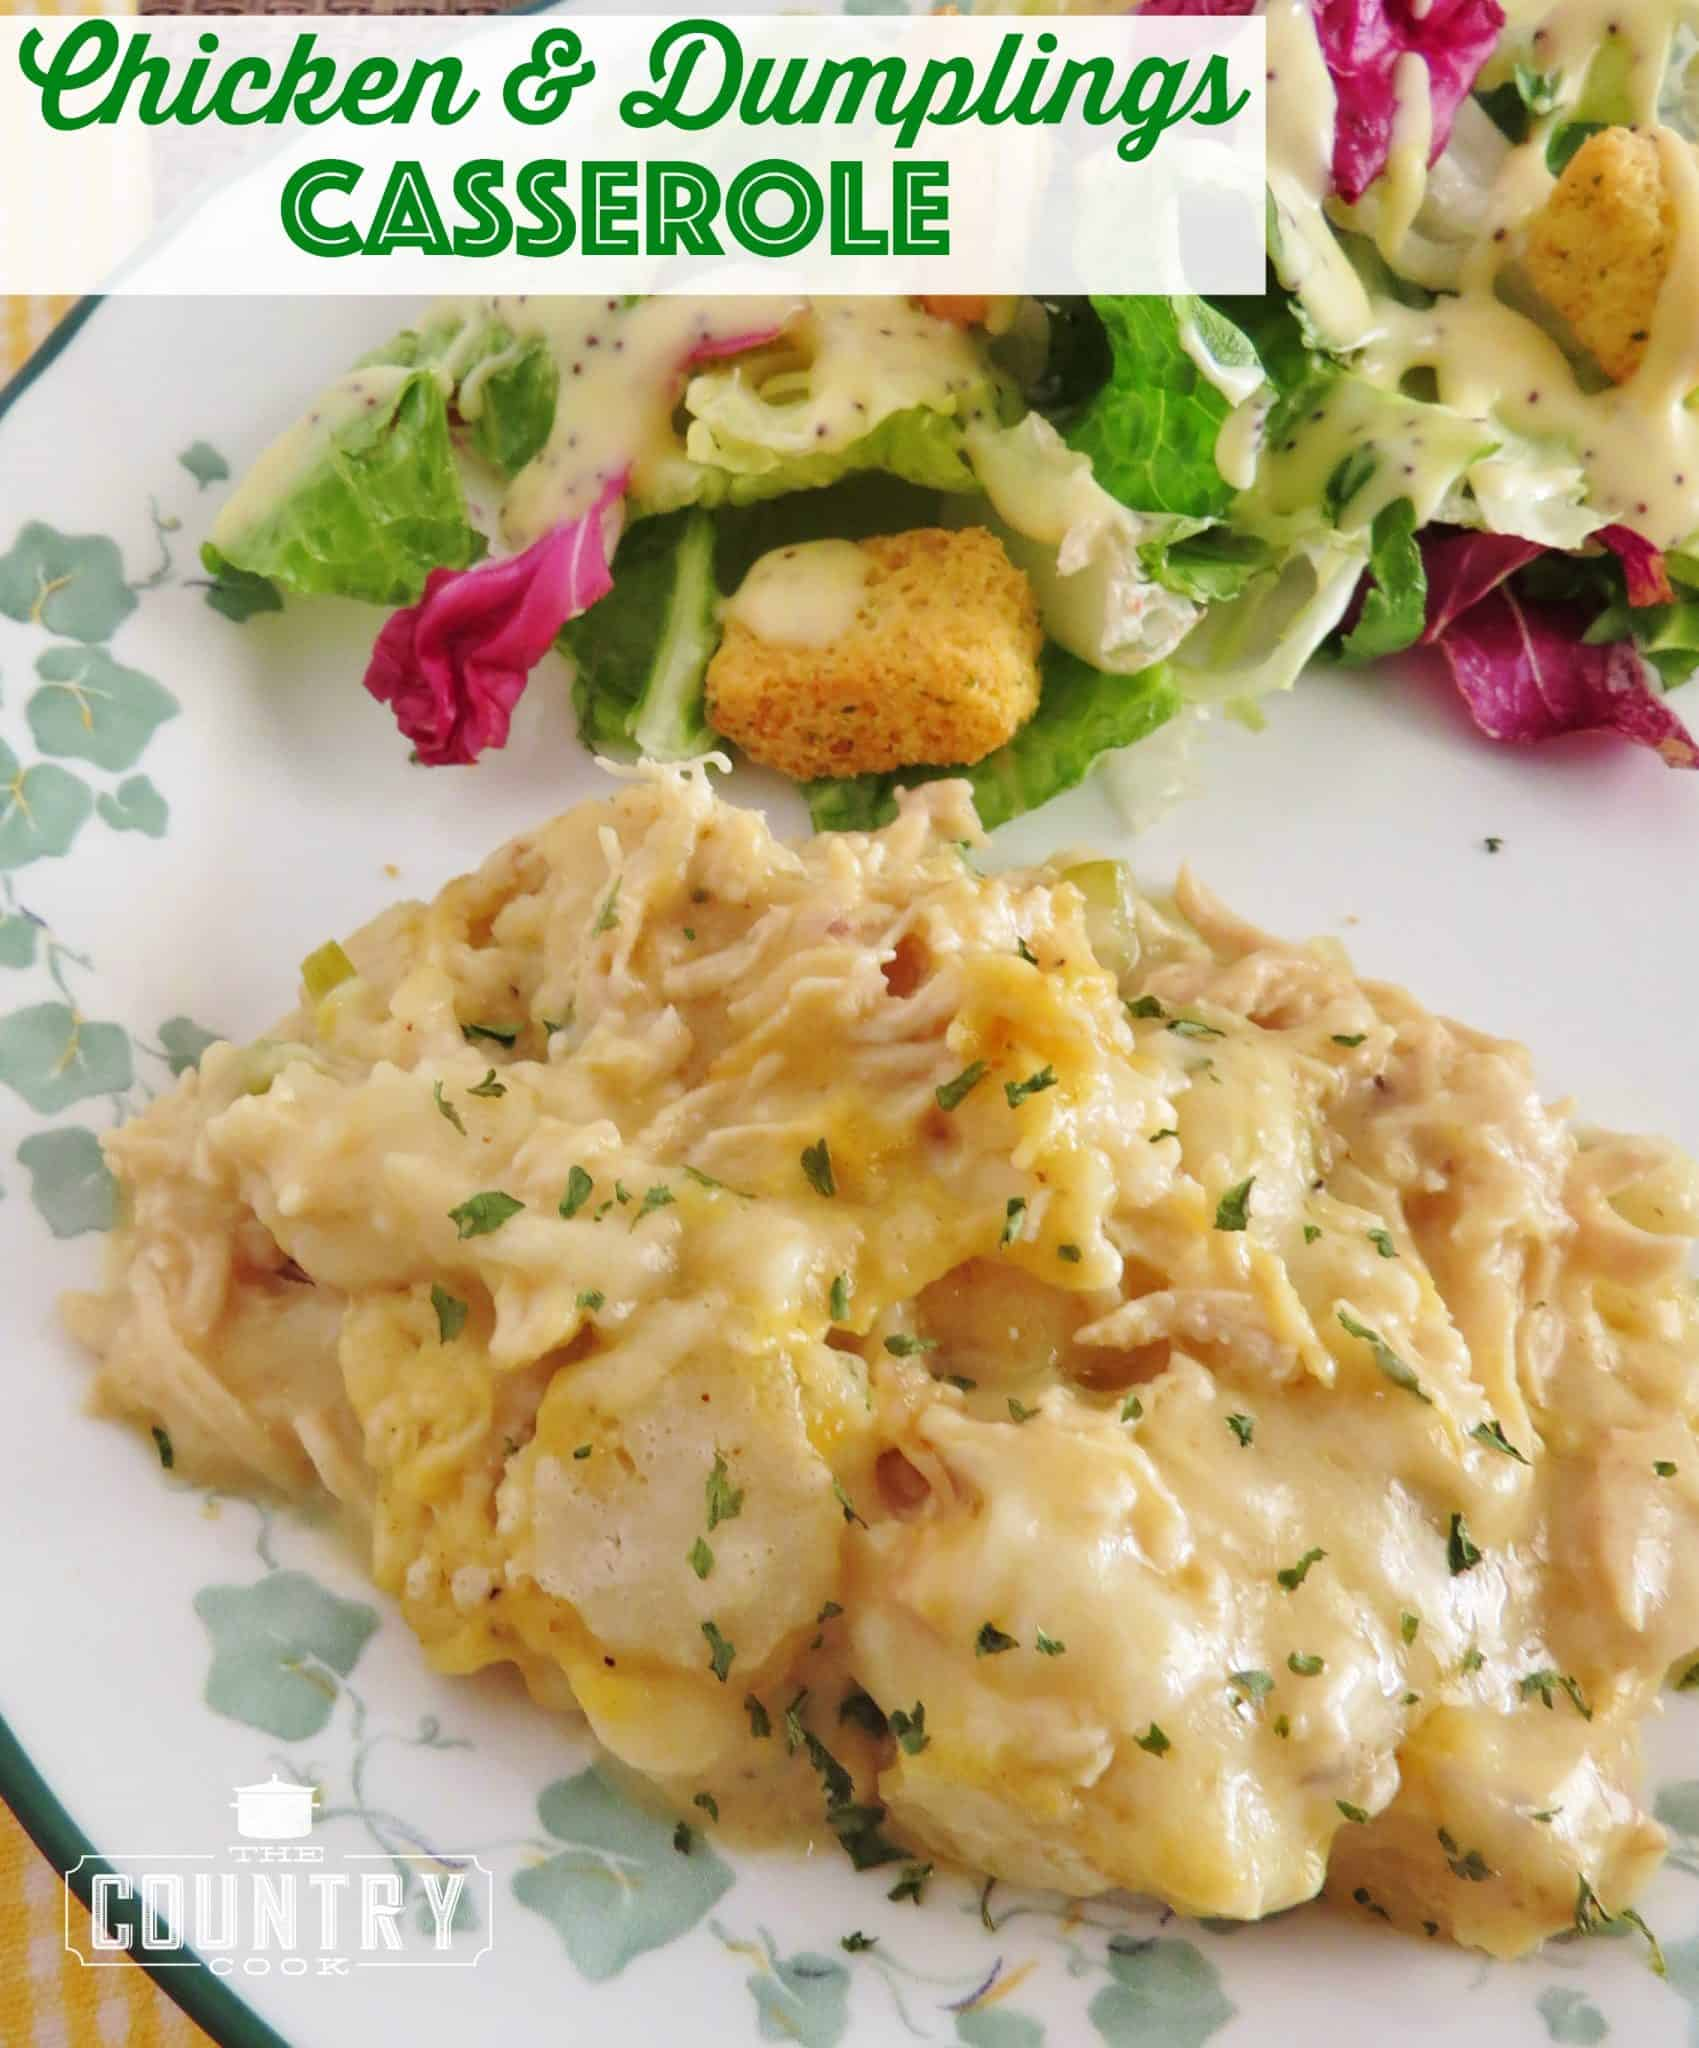 Chicken and dumplings casserole the country cook chicken and dumplings casserole forumfinder Choice Image